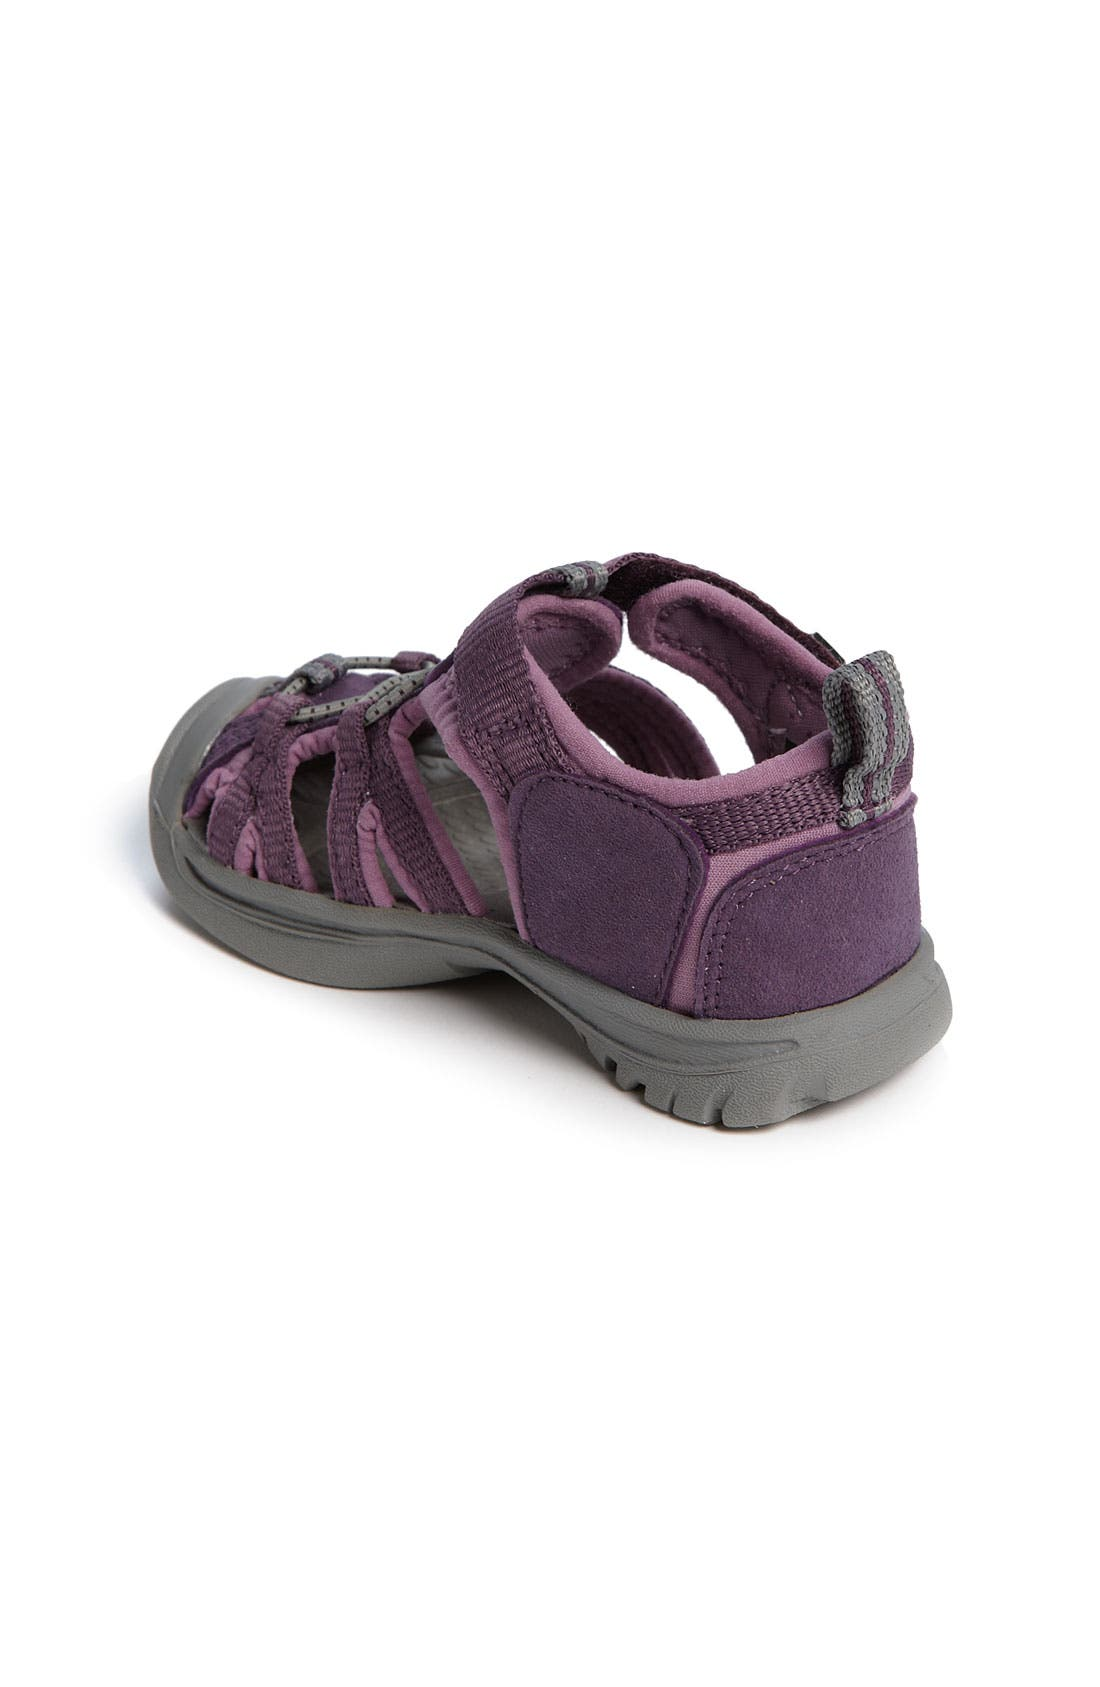 Alternate Image 2  - Keen 'Whisper' Sandal (Baby & Walker)